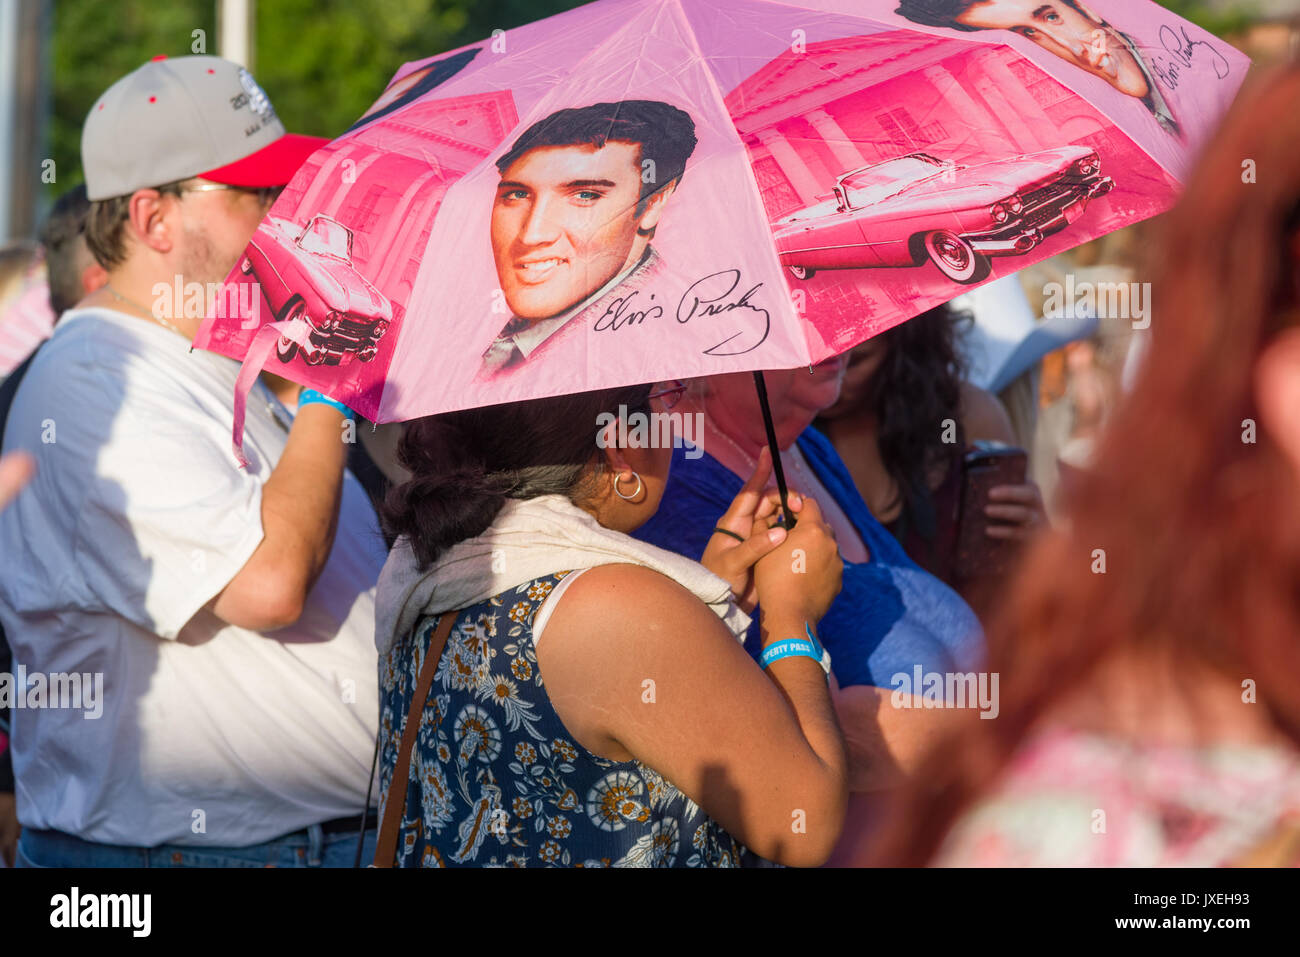 Memphis, Tennessee, USA, 15th August 2017.  Elvis Week. Candlelight Vigil. People pay tribute to Elvis Presley at his Memphis home, Graceland.  The candlelight vigil is in it's 40th year.  Elvis died 16 August 1977. Credit: Gary Culley/Alamy Live News - Stock Image